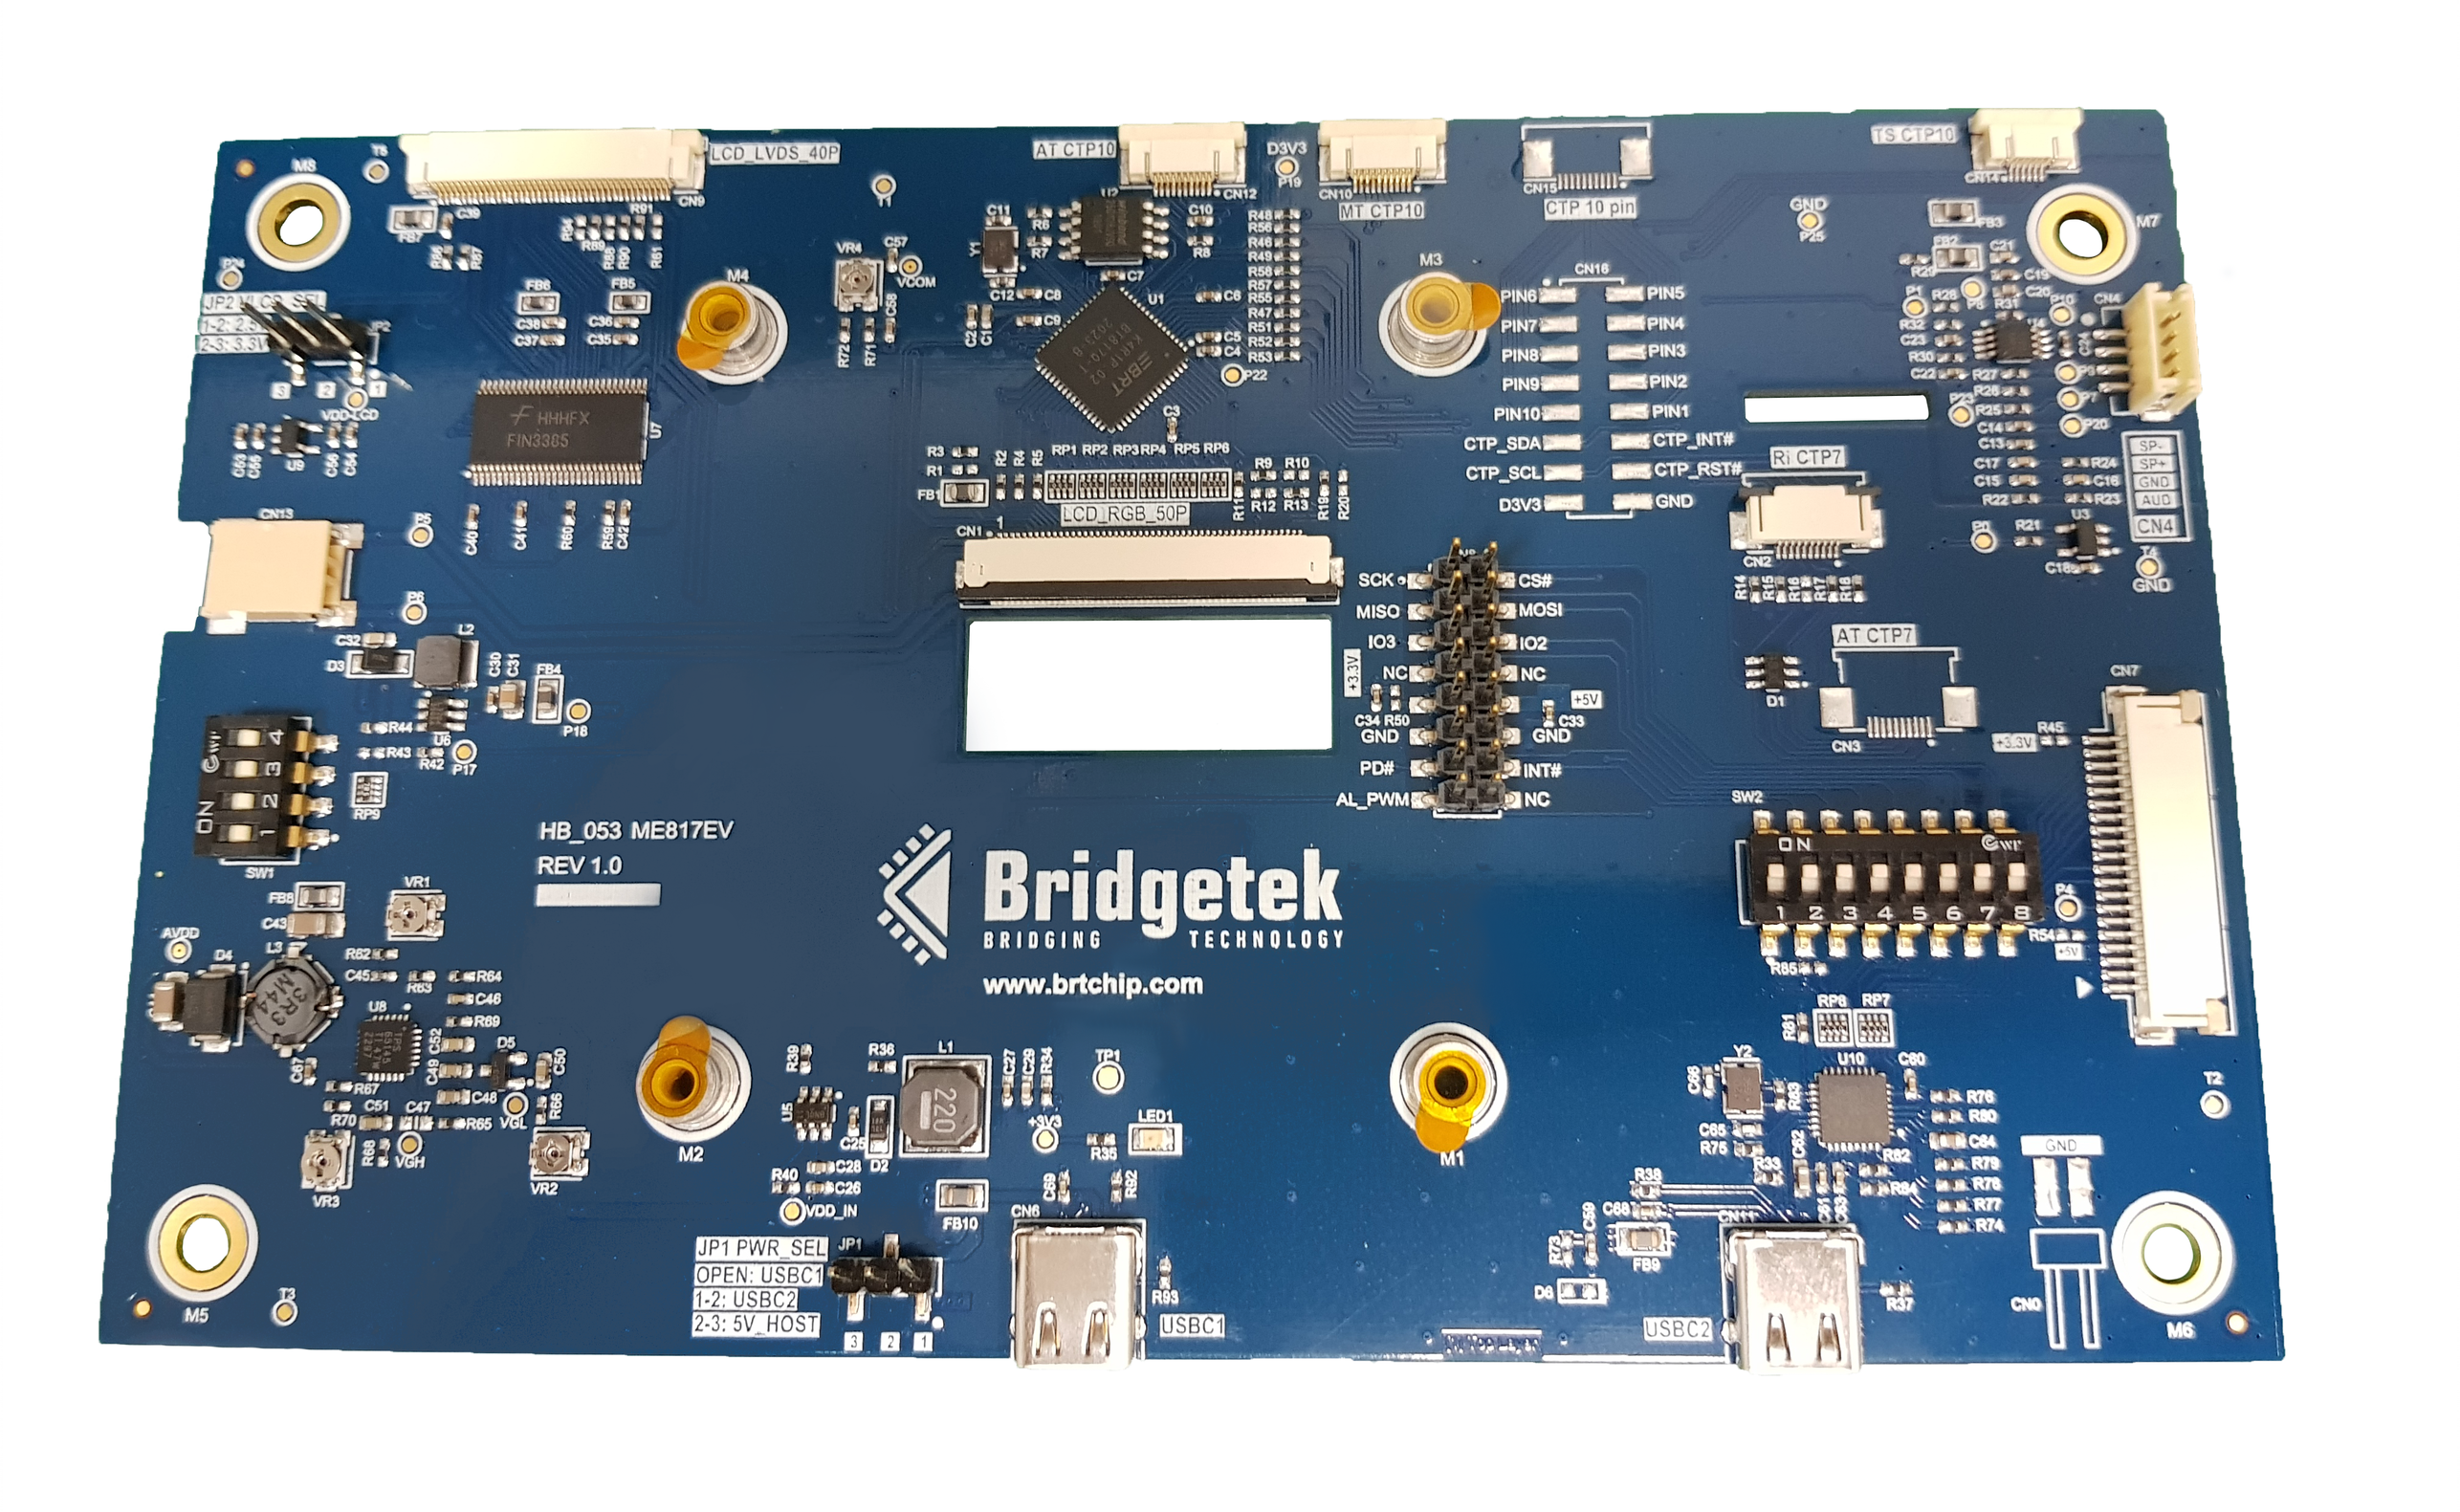 Bridgetek Introduces New Evaluation Hardware for Advanced EVE Graphic Controllers